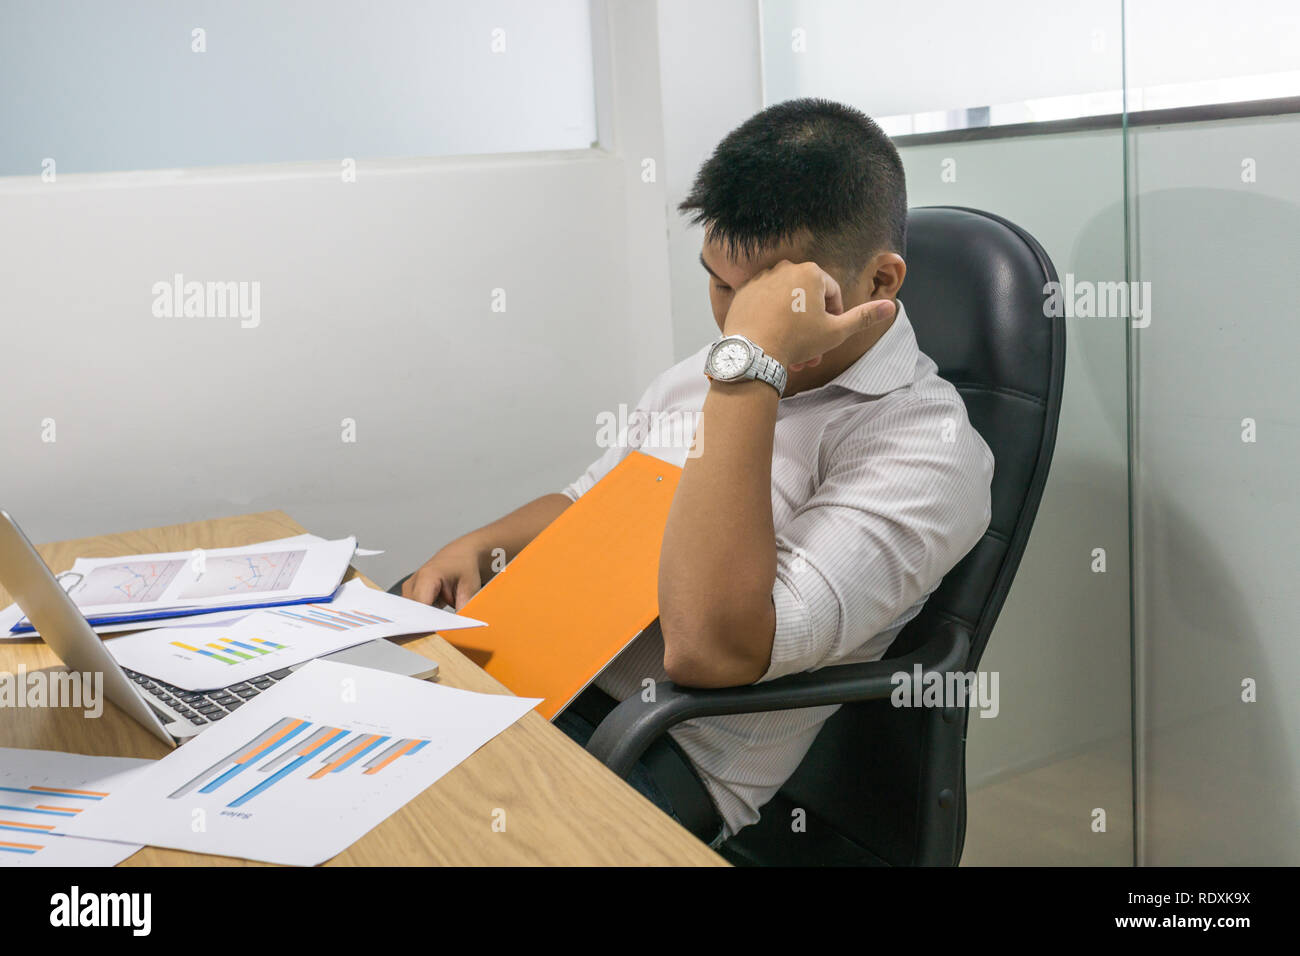 Tired and stressful man overloaded with business work - Stock Image